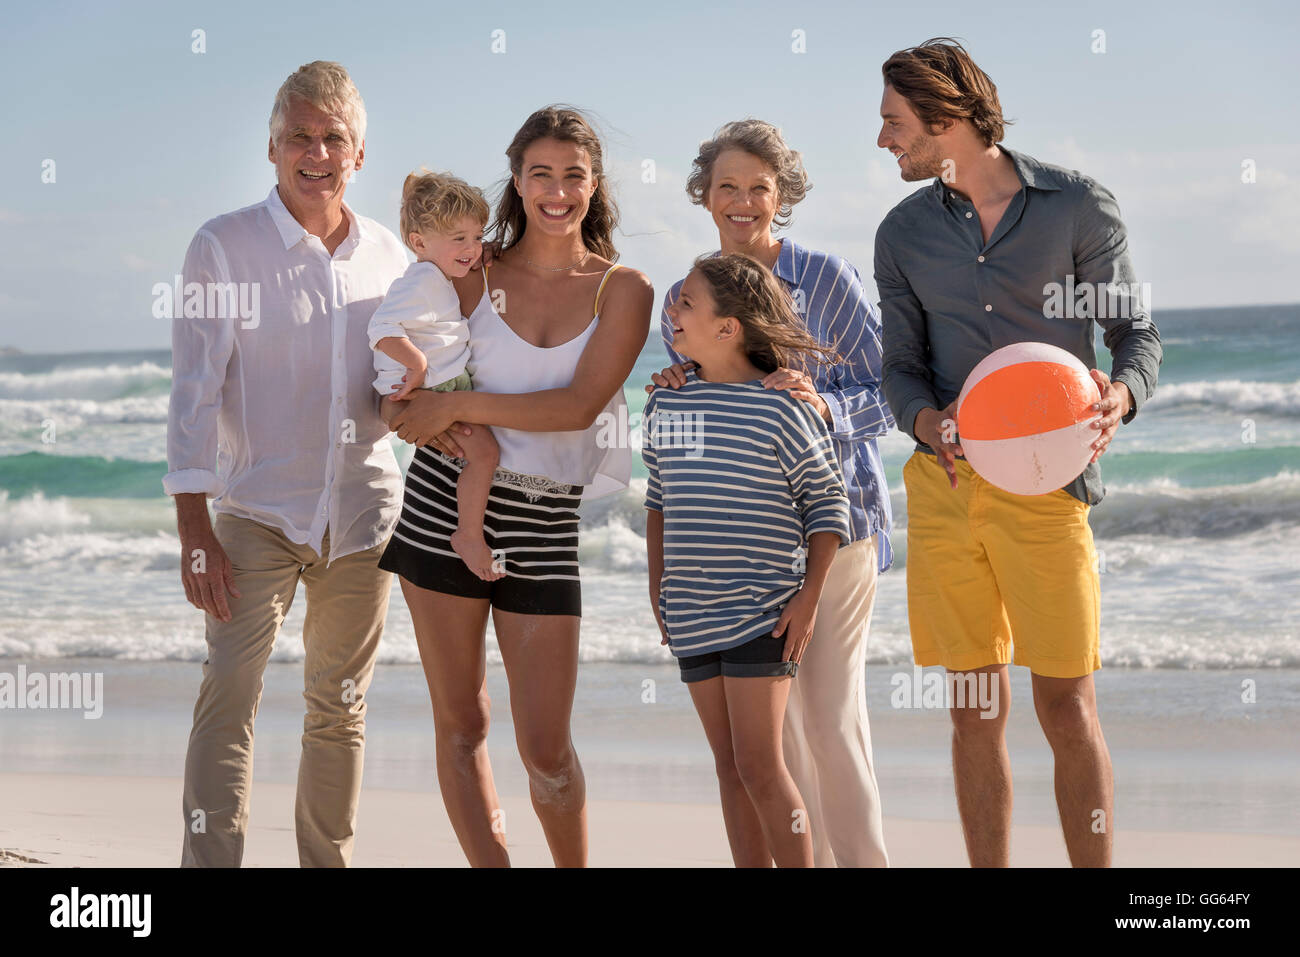 Portrait of happy multi-generation family standing on beach - Stock Image